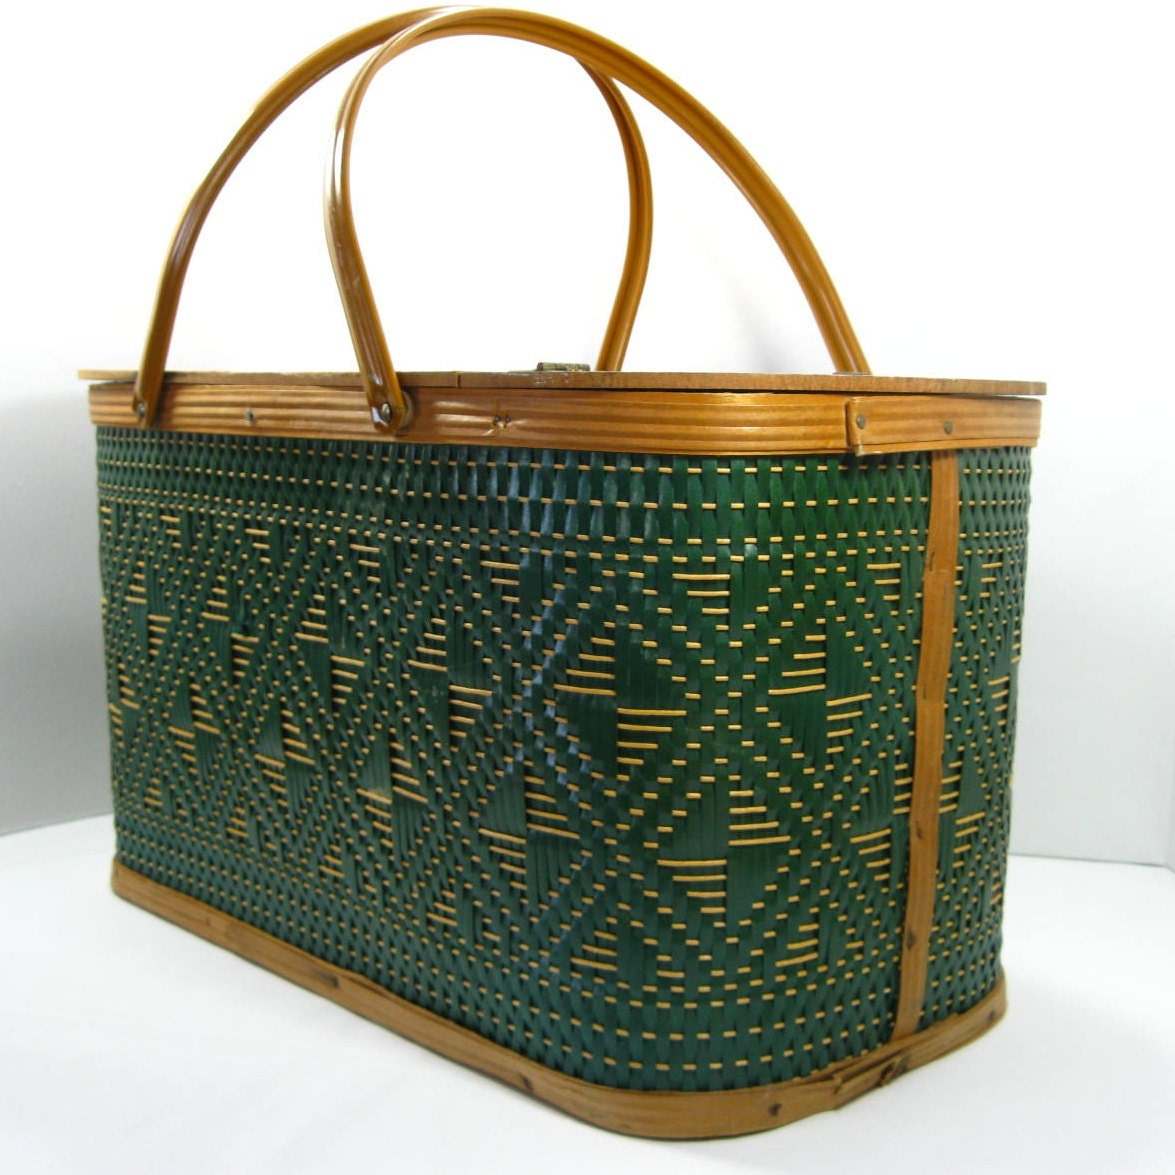 Picnic Basket With Wooden Lid Practical And By